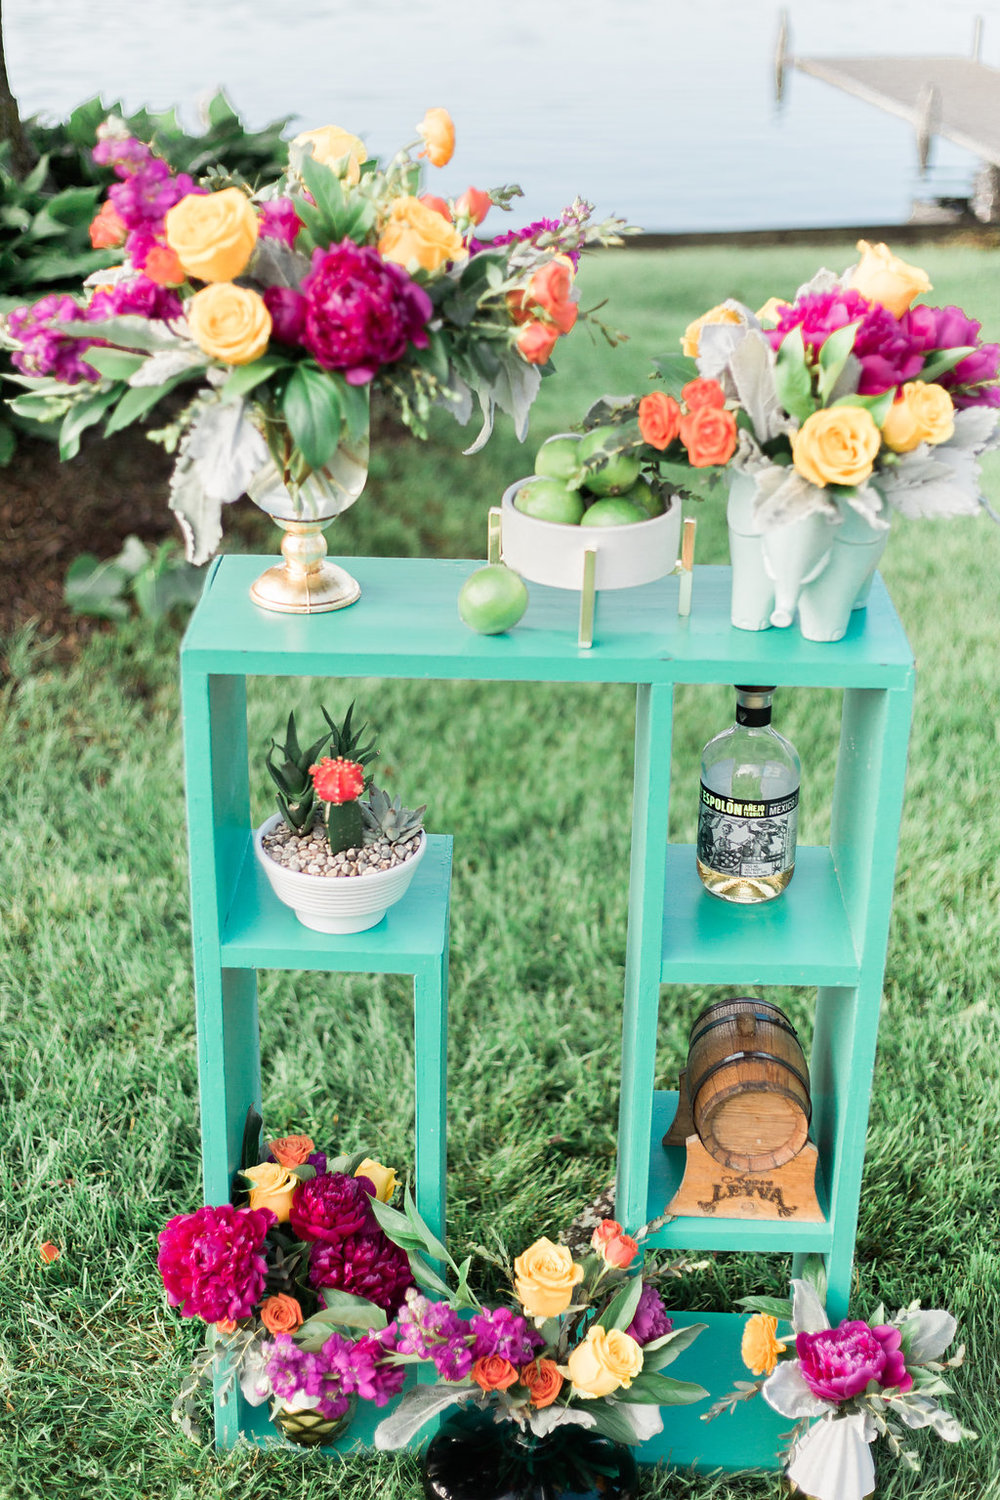 This is my life; flowers, tequila, bright colors, and lake life.  Photographer:  Cynthia Boyle